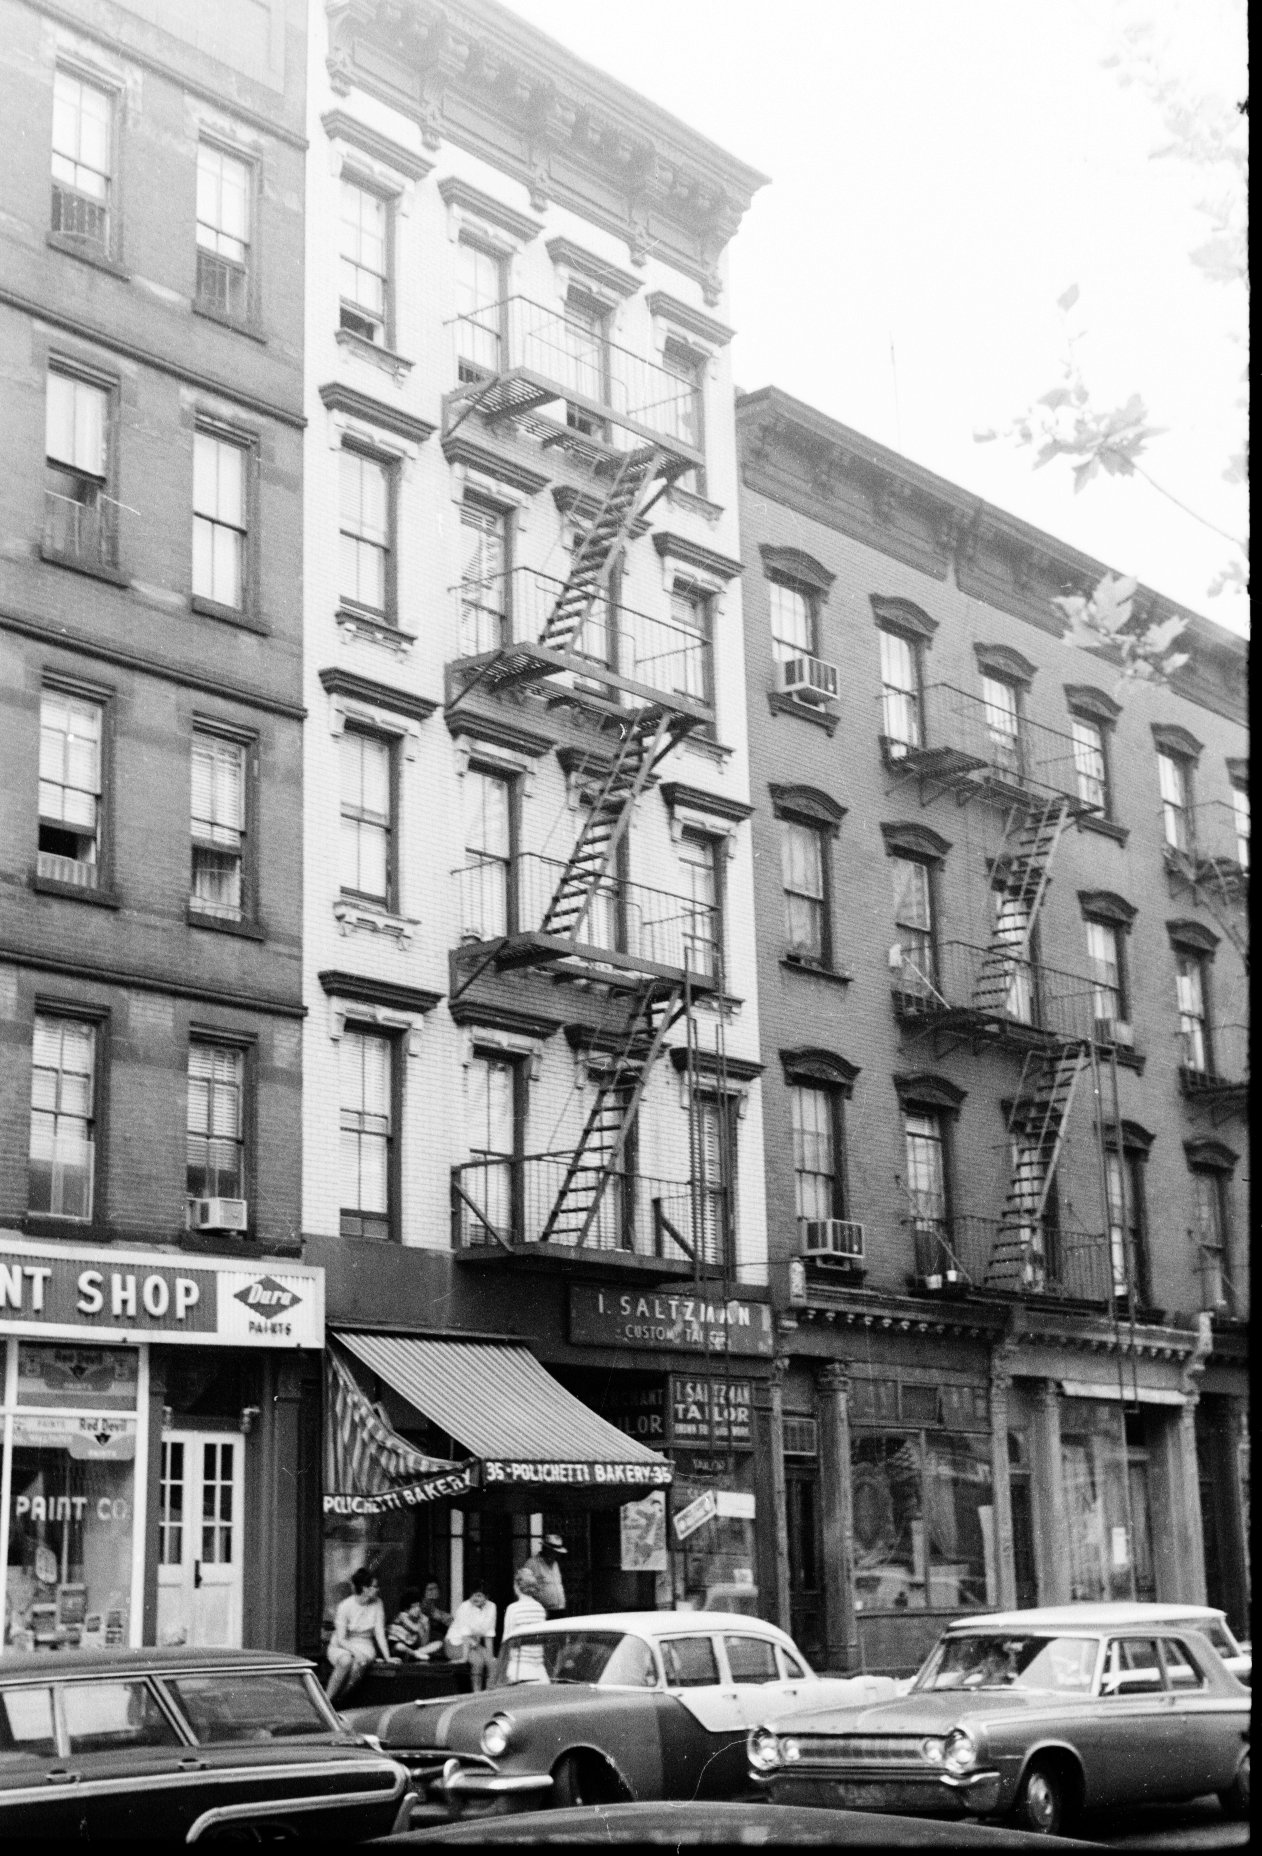 Tenement houses in new york city